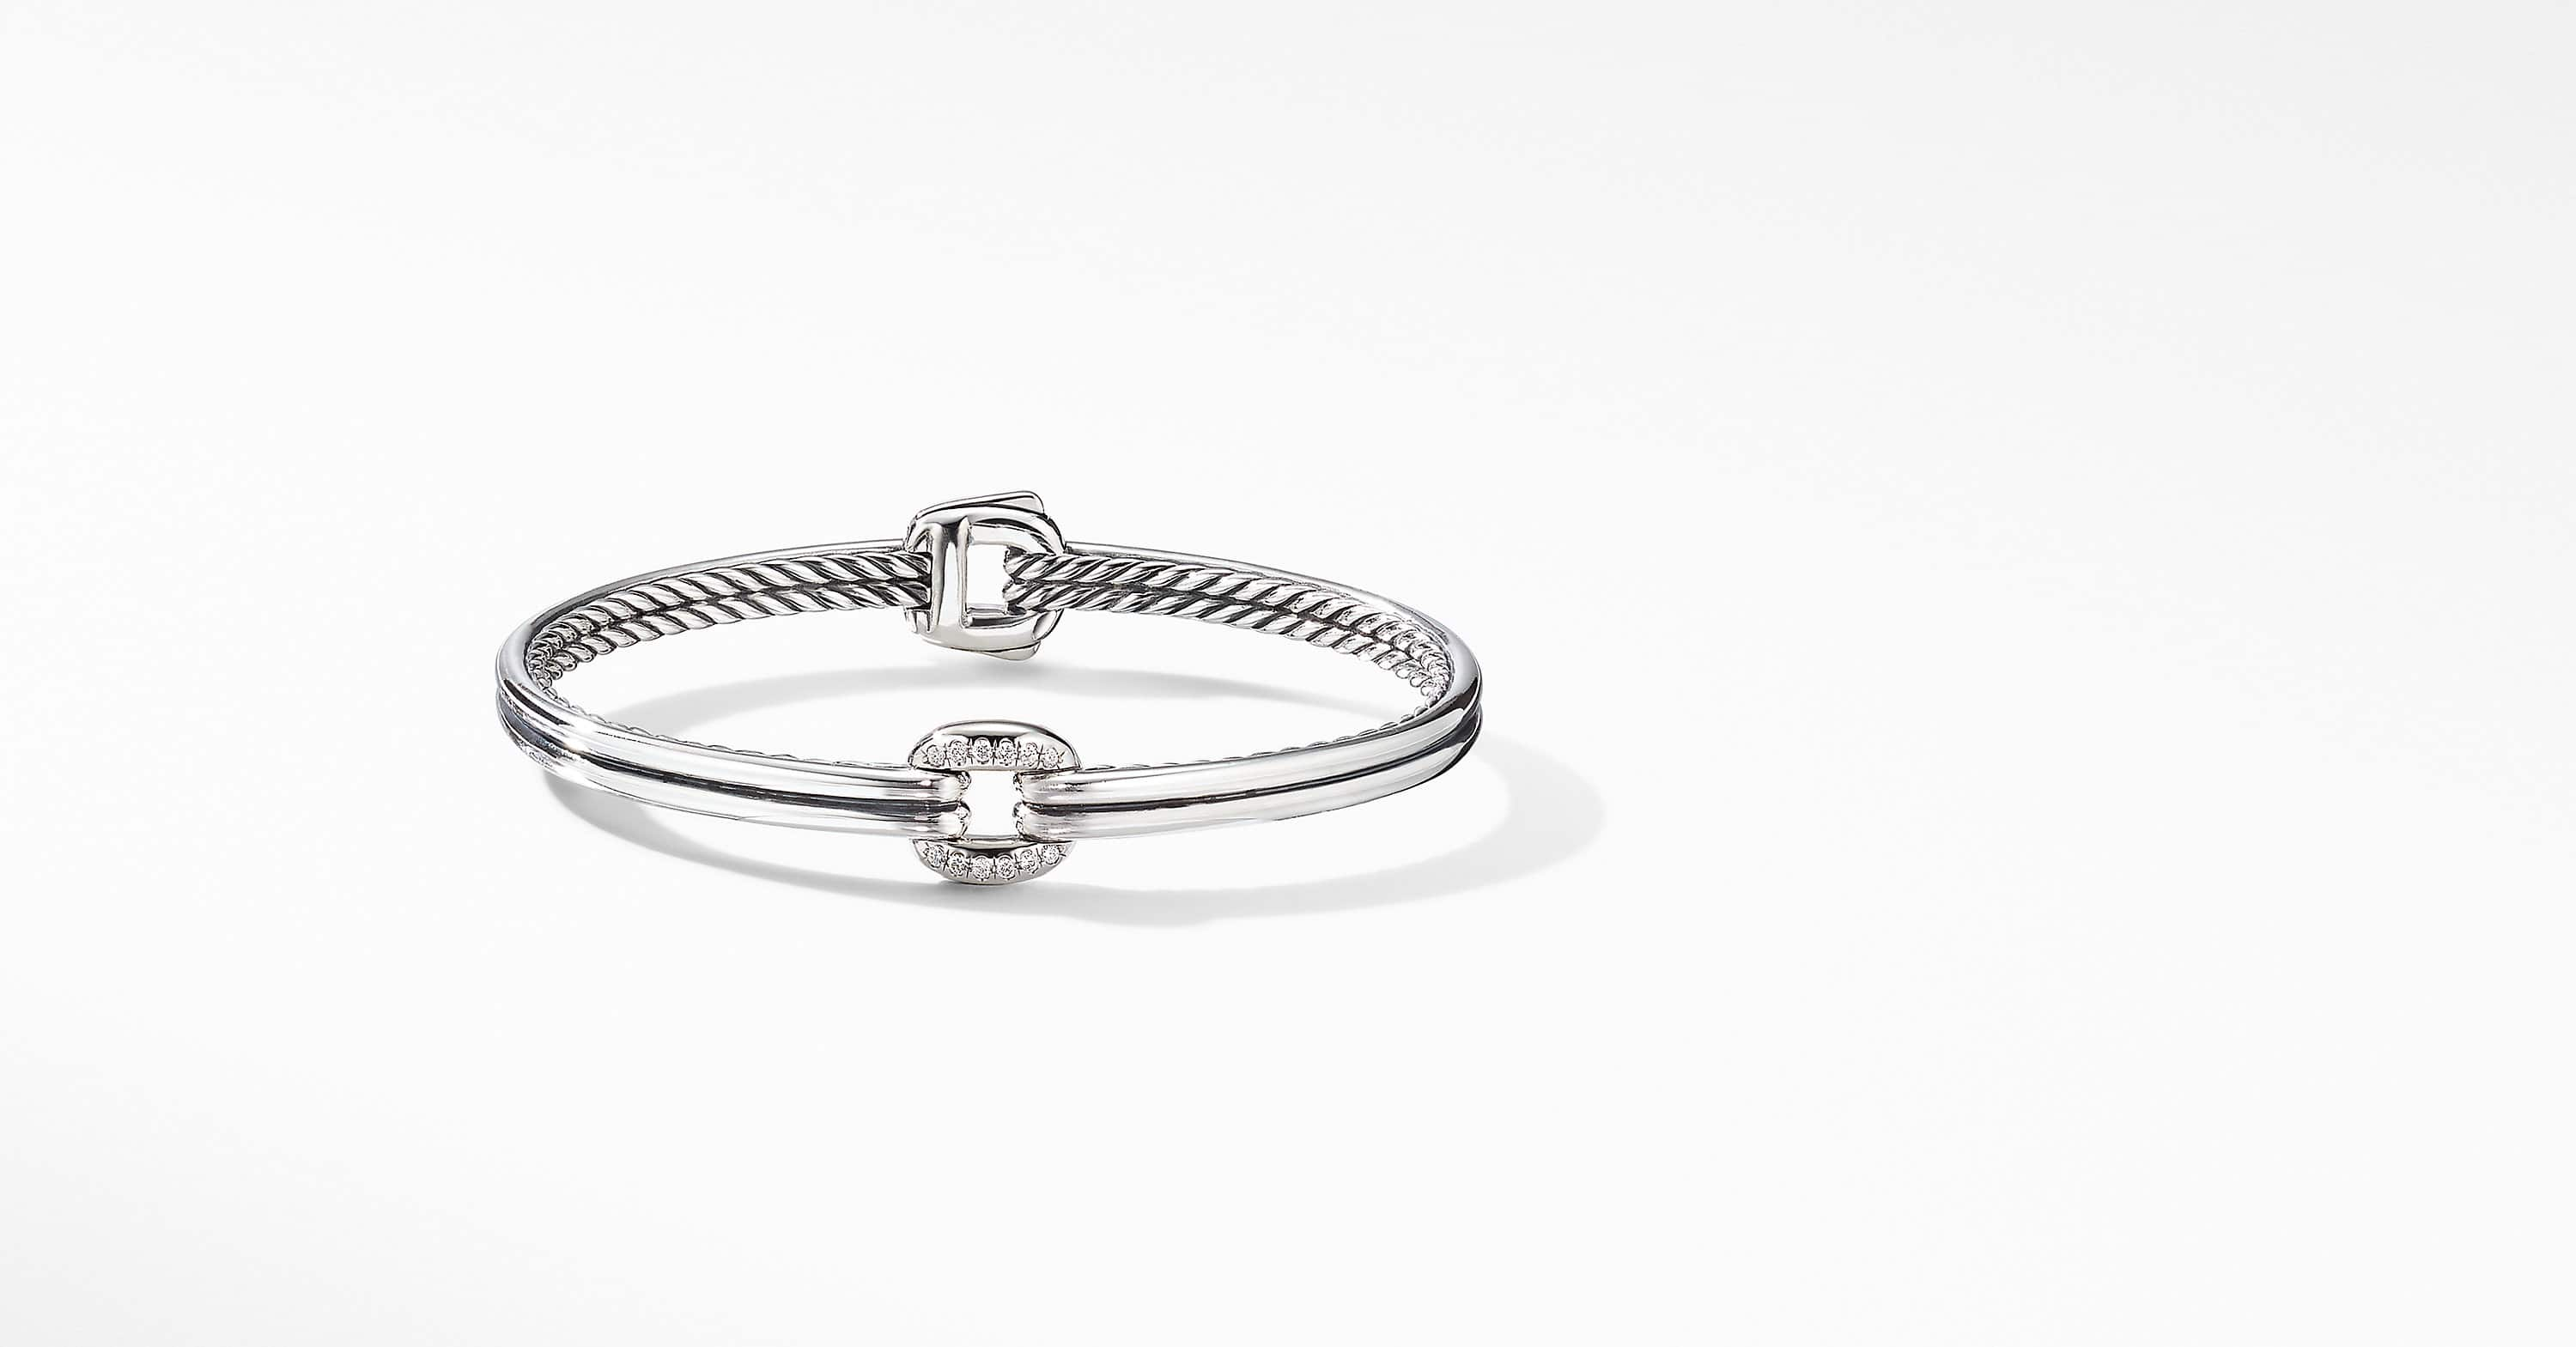 Thoroughbred Center Link Bracelet with Diamonds